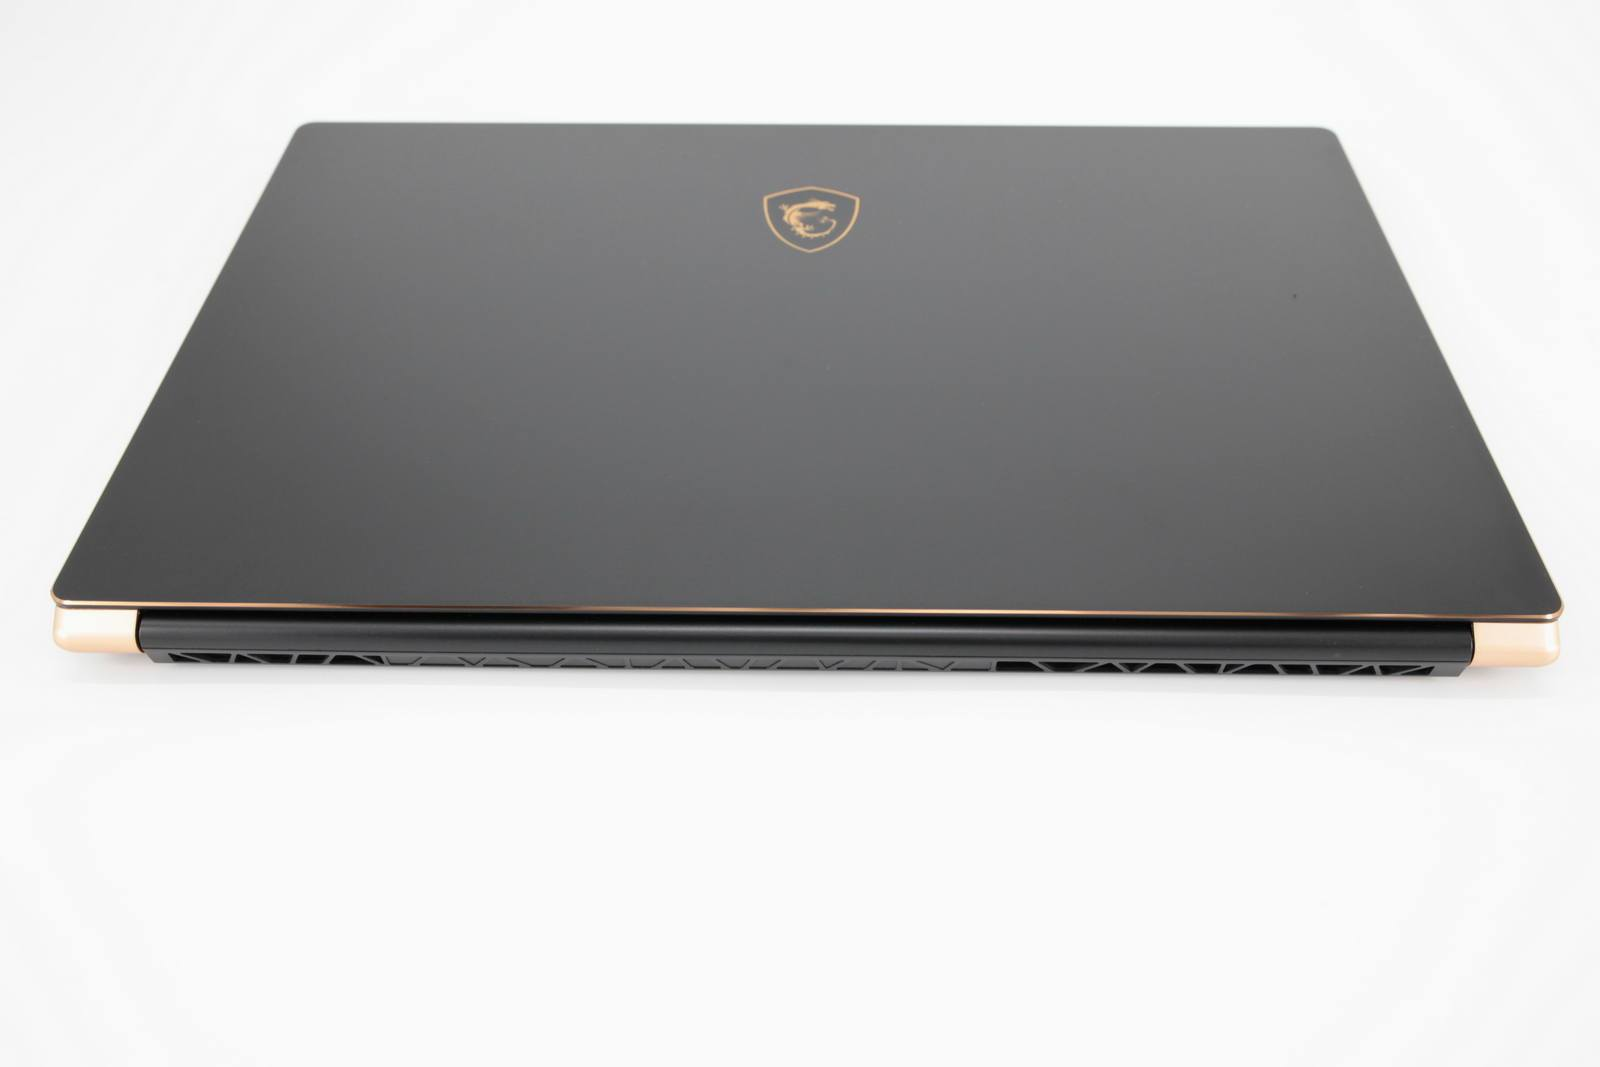 MSI GS75 RTX Gaming Laptop: Intel Core i7 8th Gen, 16GB RAM, 256GB SSD, Warranty - CruiseTech